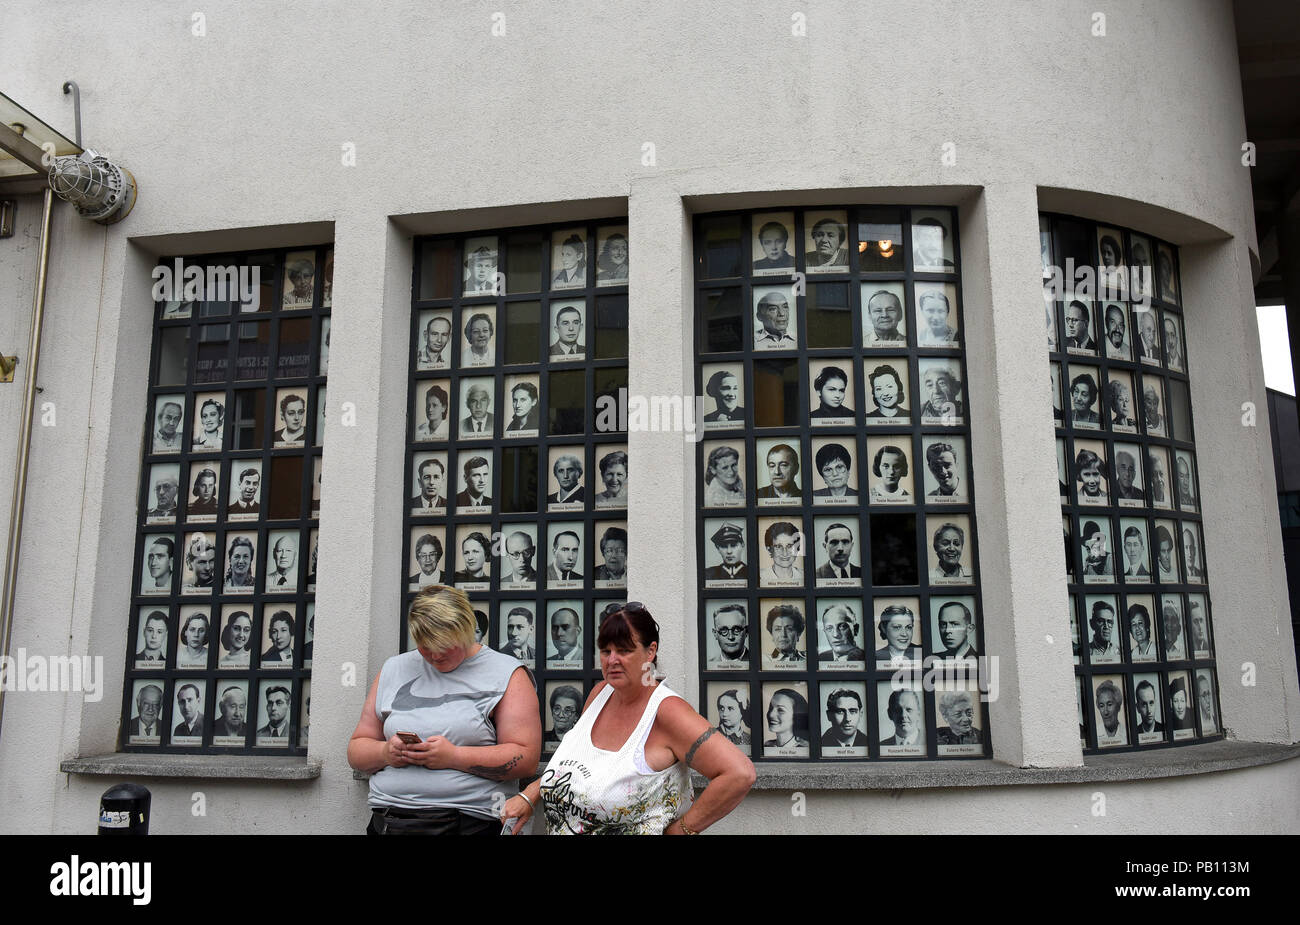 Portraits of Jewish workers and survivors from the Oskar Schindler factory Krakow Poland location of the former factory of Oskar Schindler - known fro - Stock Image